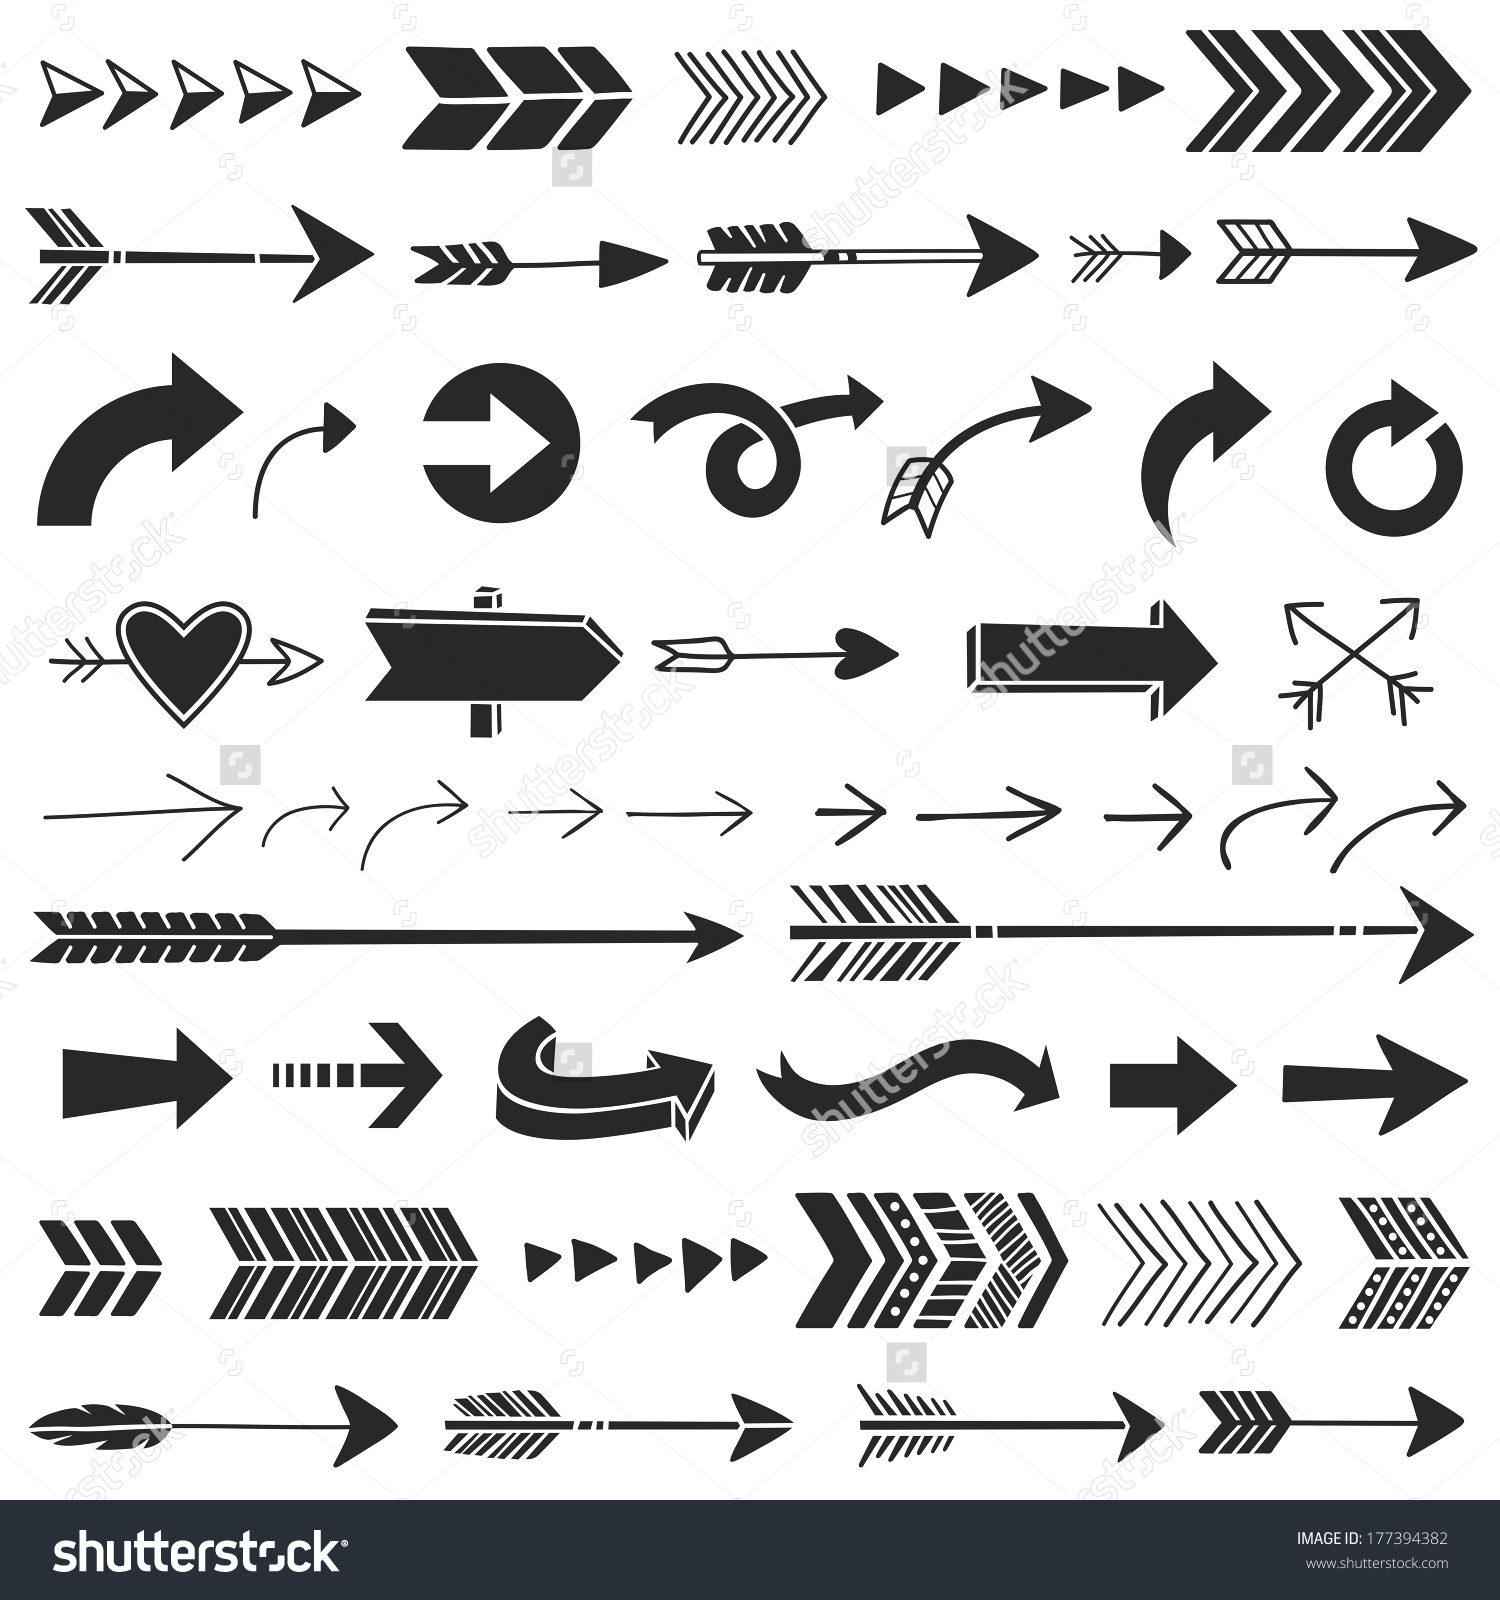 Arrows graphic. Hand drawn stock vector